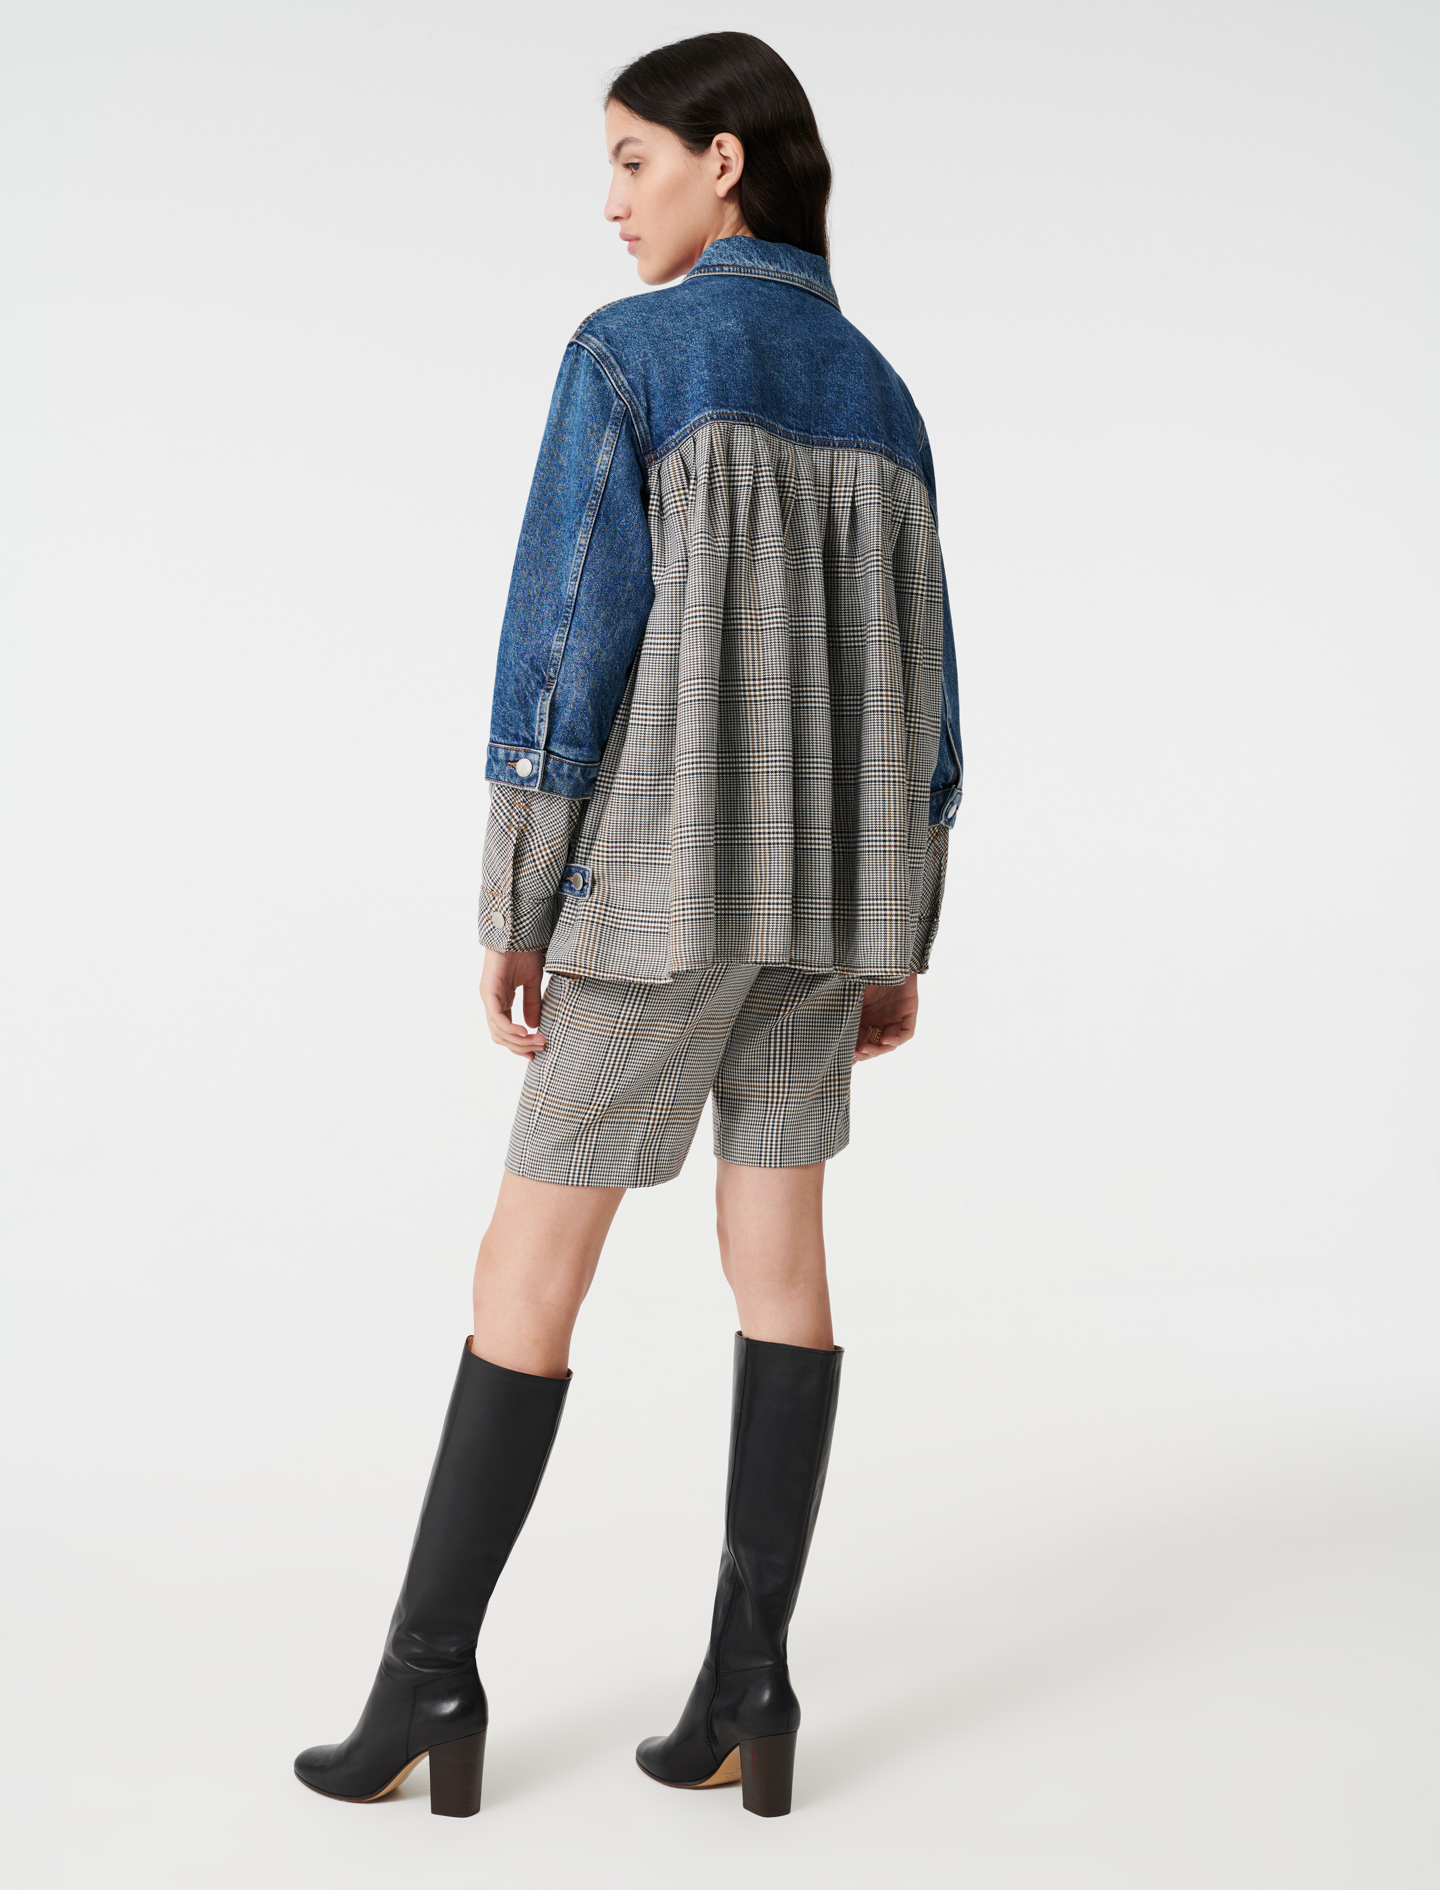 Denim trompe l'oeil jacket - Blue